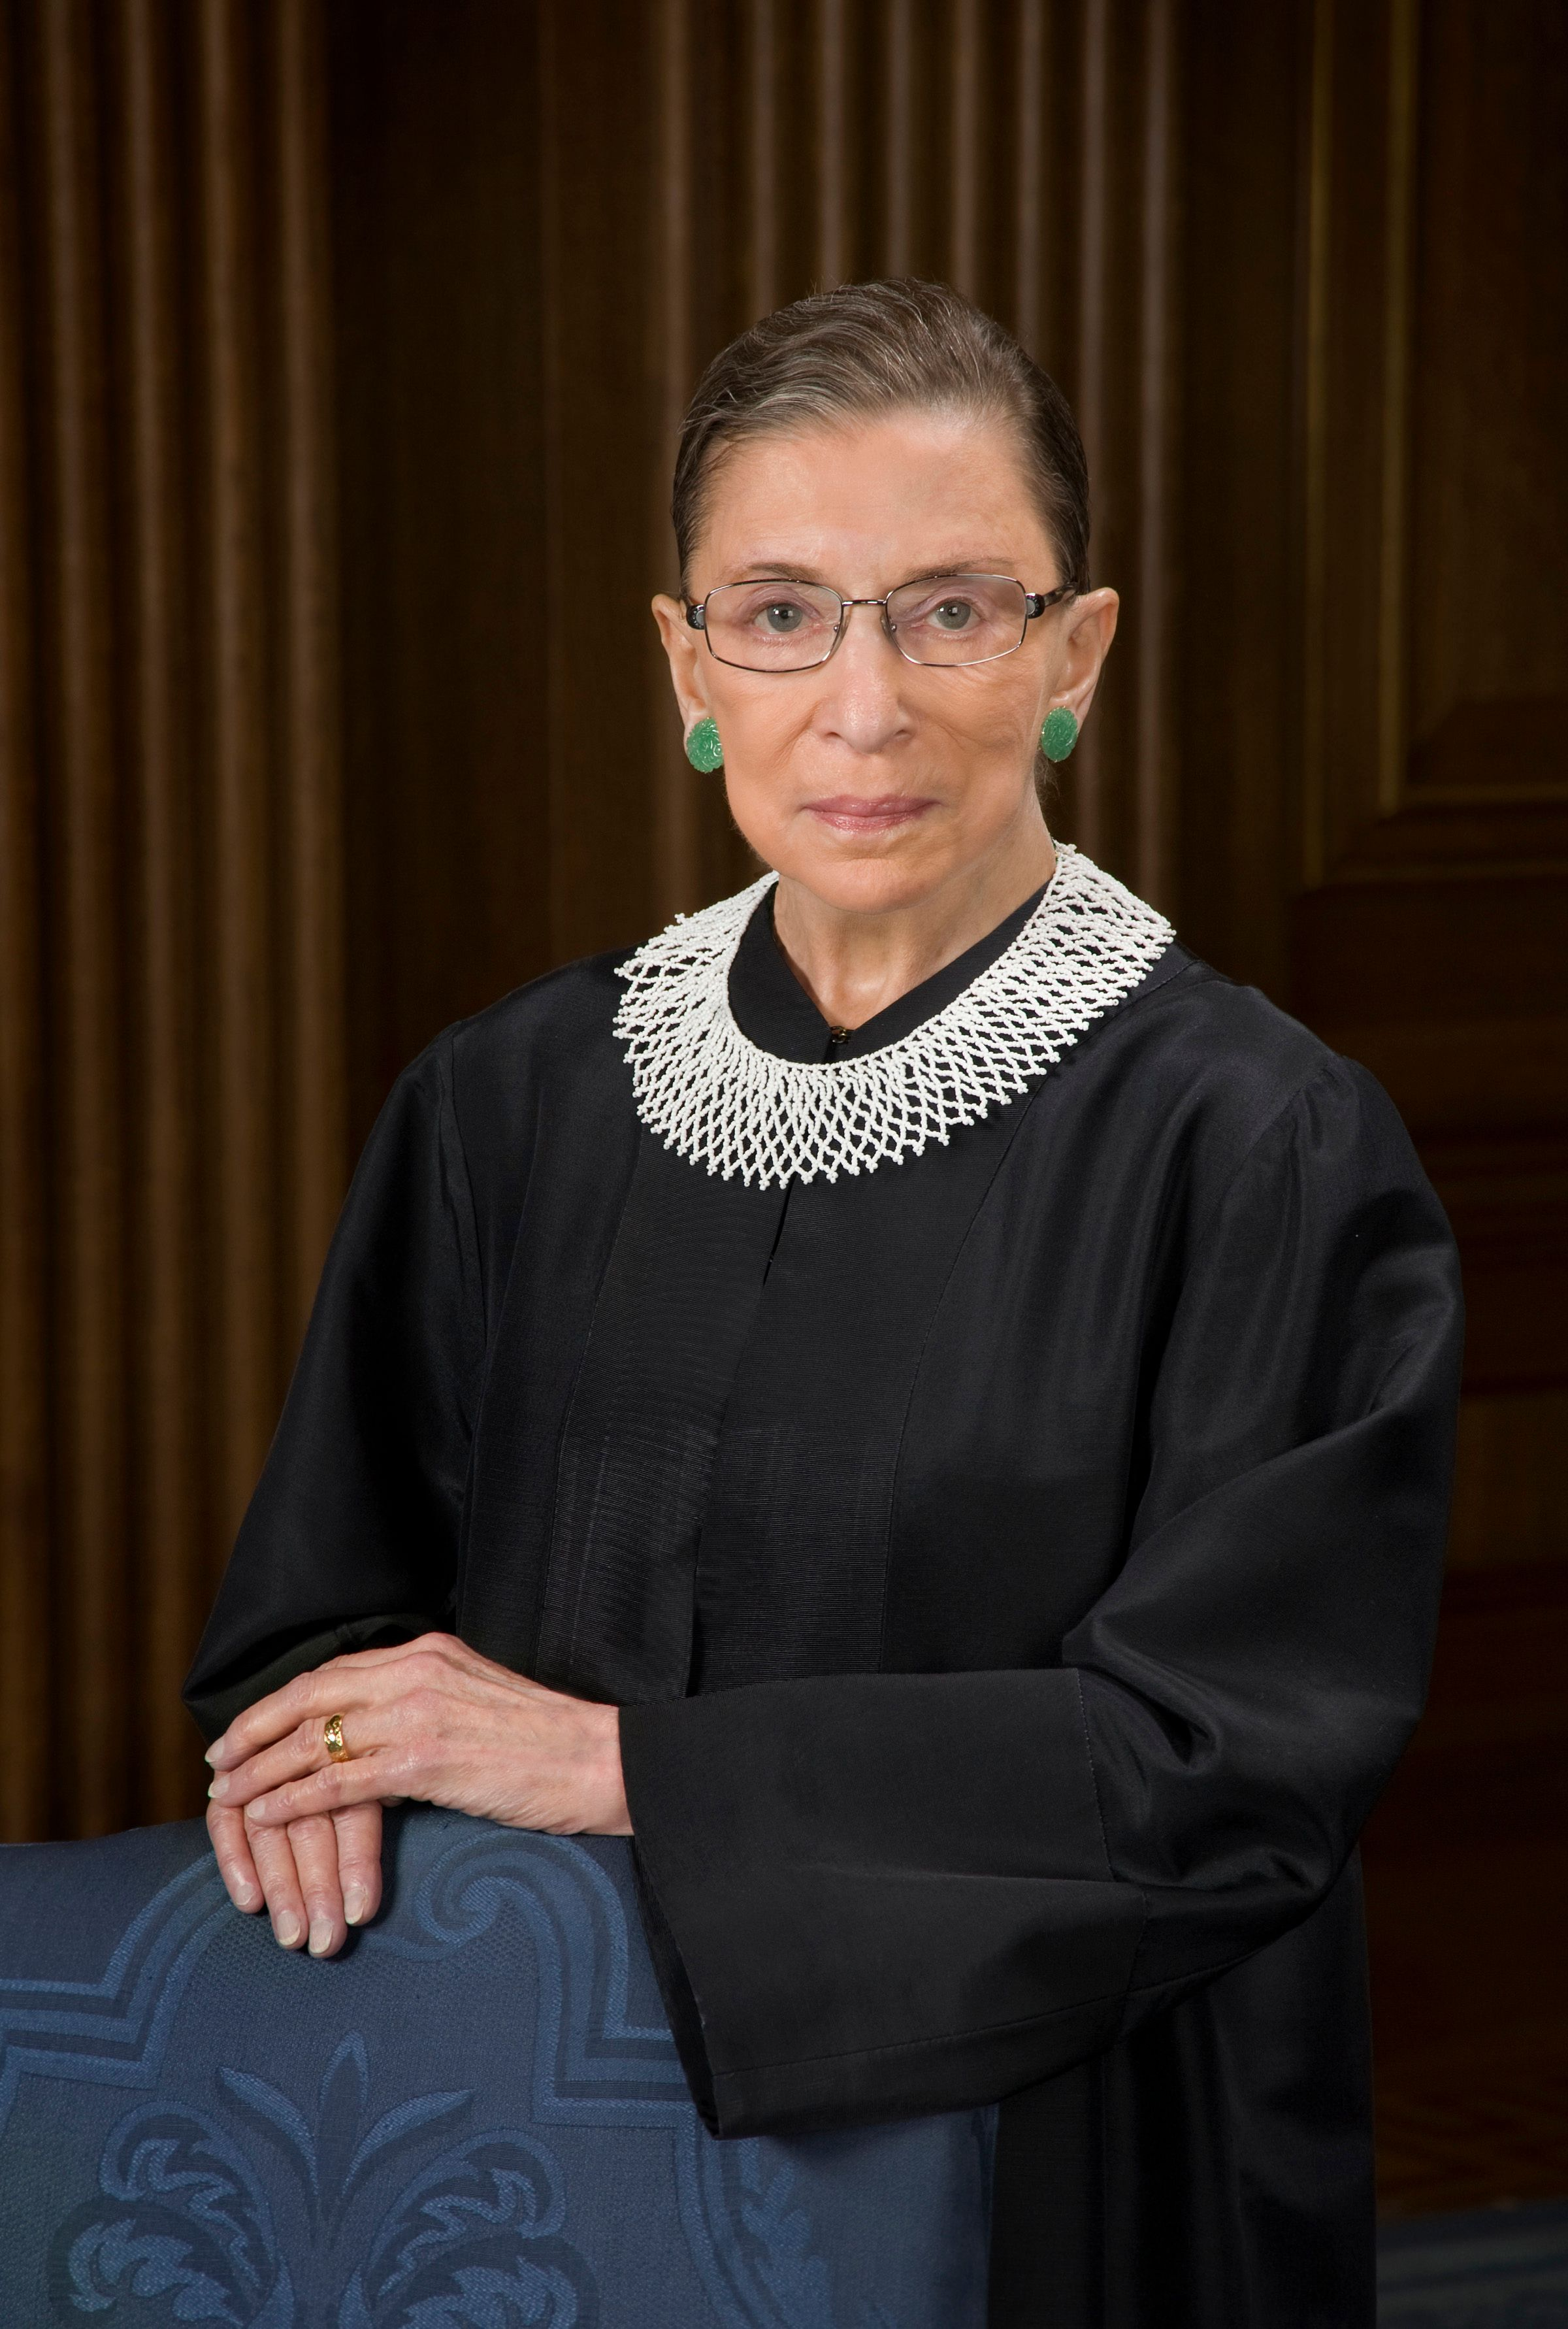 A photo of late Supreme Court Justice Ruth Bader Ginsburg on October 8, 2010. | Photo: Getty Images.